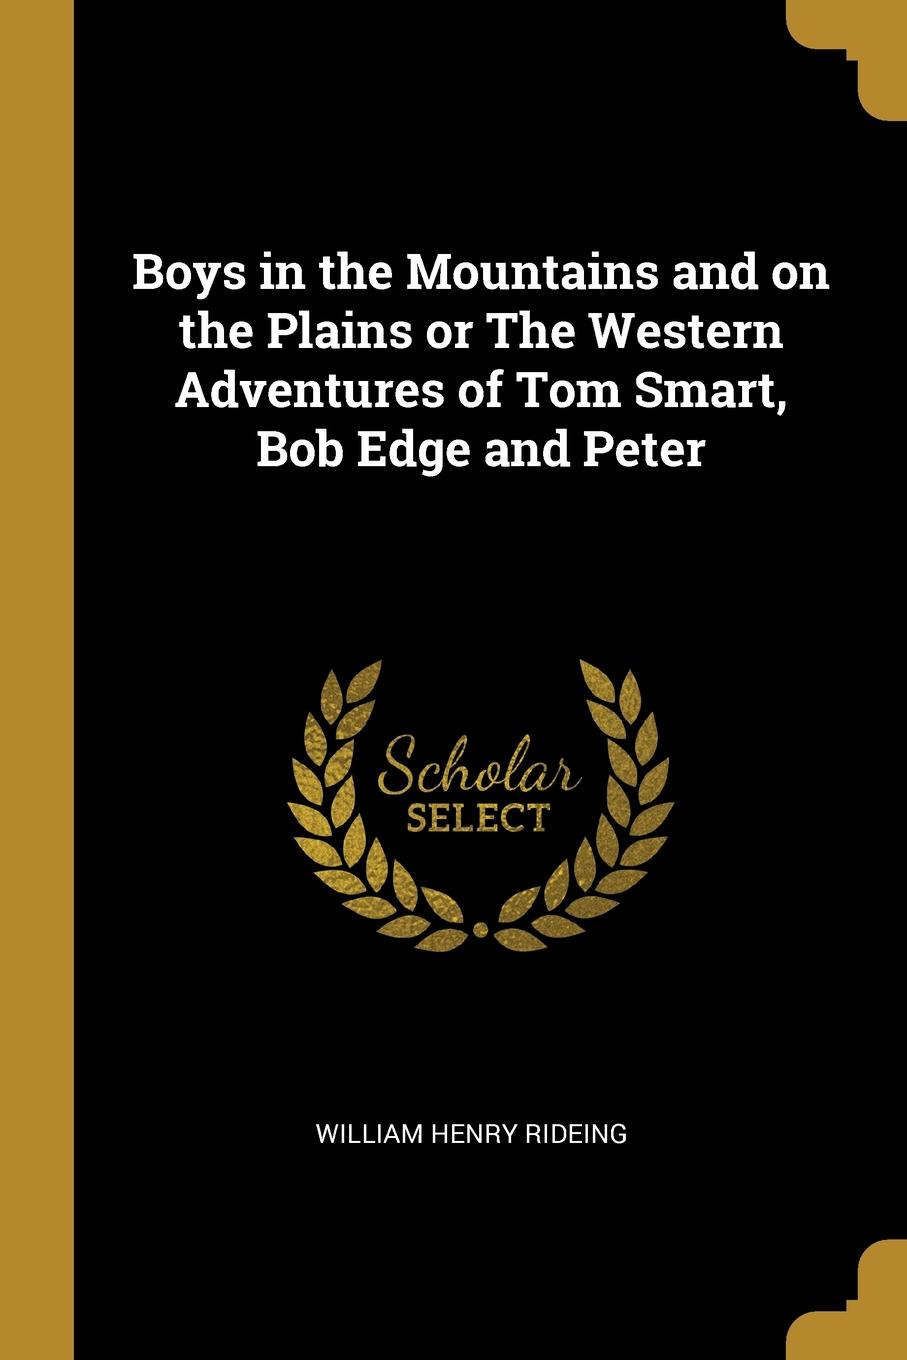 William Henry Rideing. Boys in the Mountains and on the Plains or The Western Adventures of Tom Smart, Bob Edge and Peter